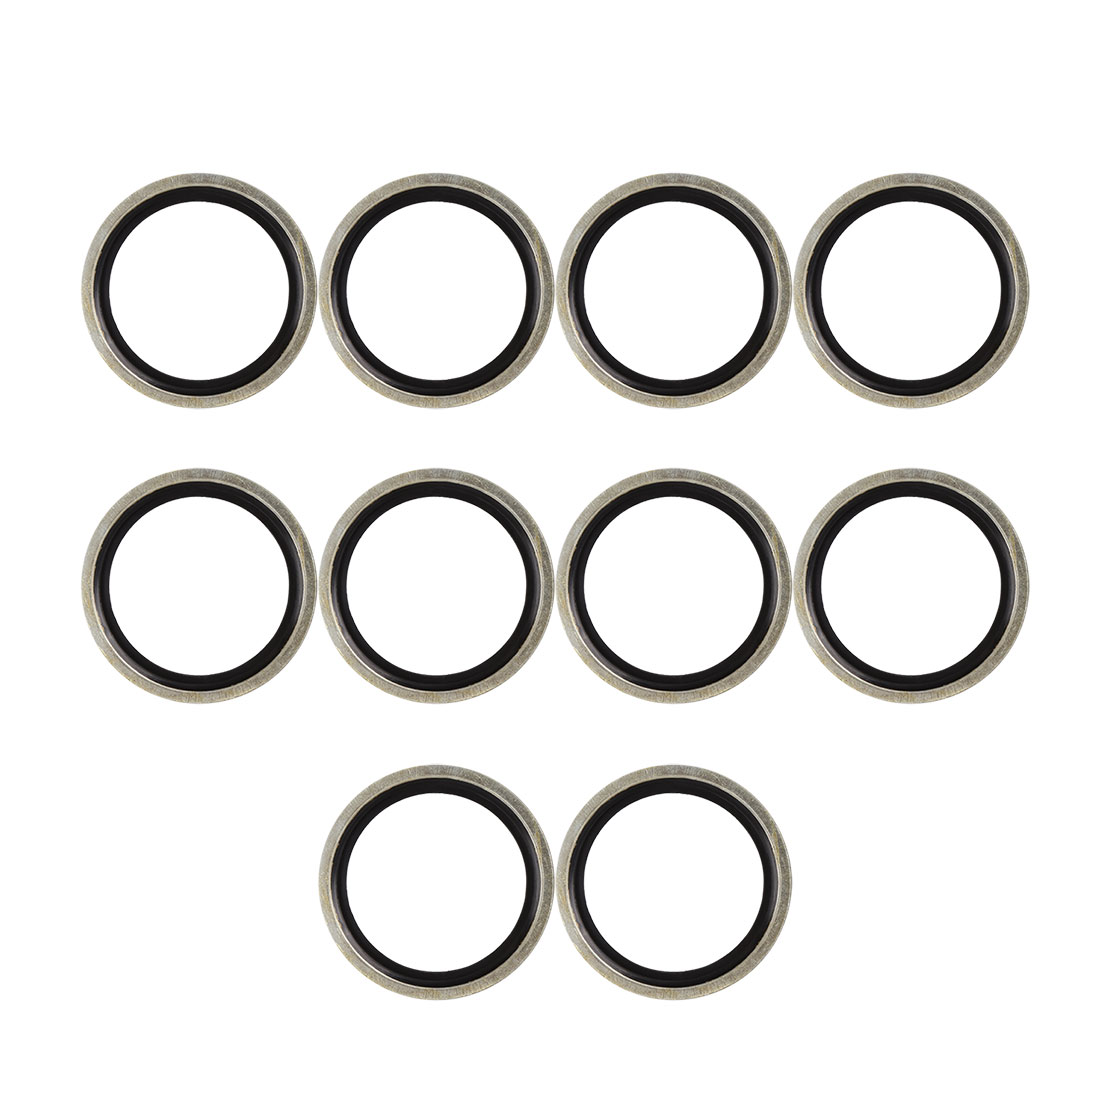 10pcs 40 x 52 x 3mm Engine Oil Drain Crush Flat Bonded Washer Seal Gaskets